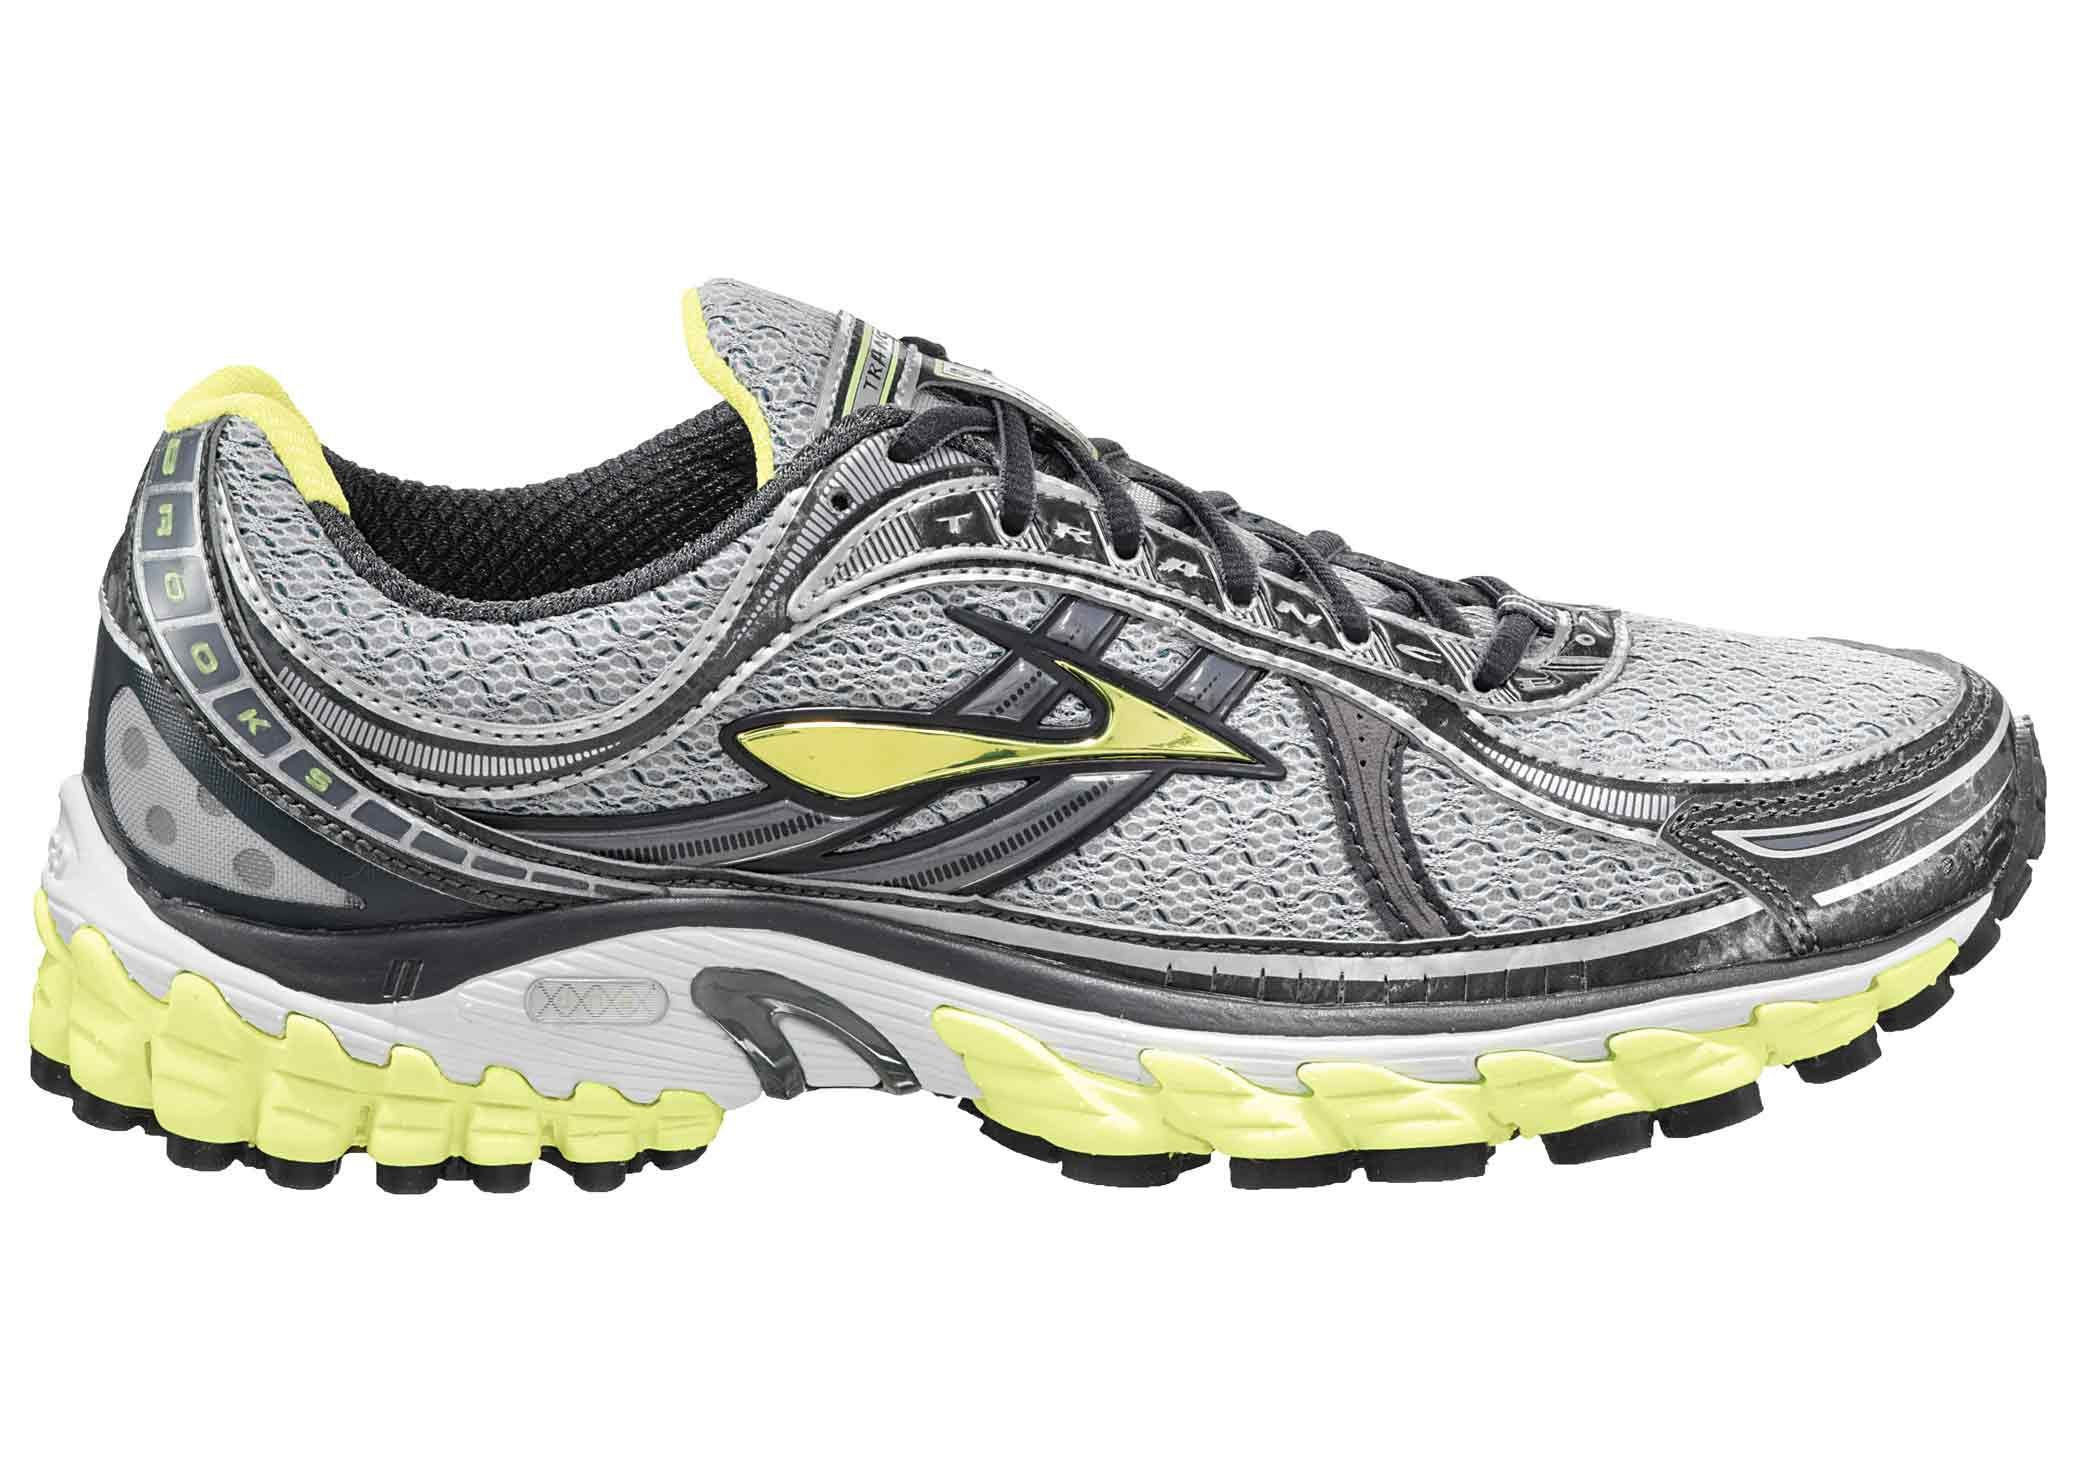 My new running shoes: Brooks Trance 11